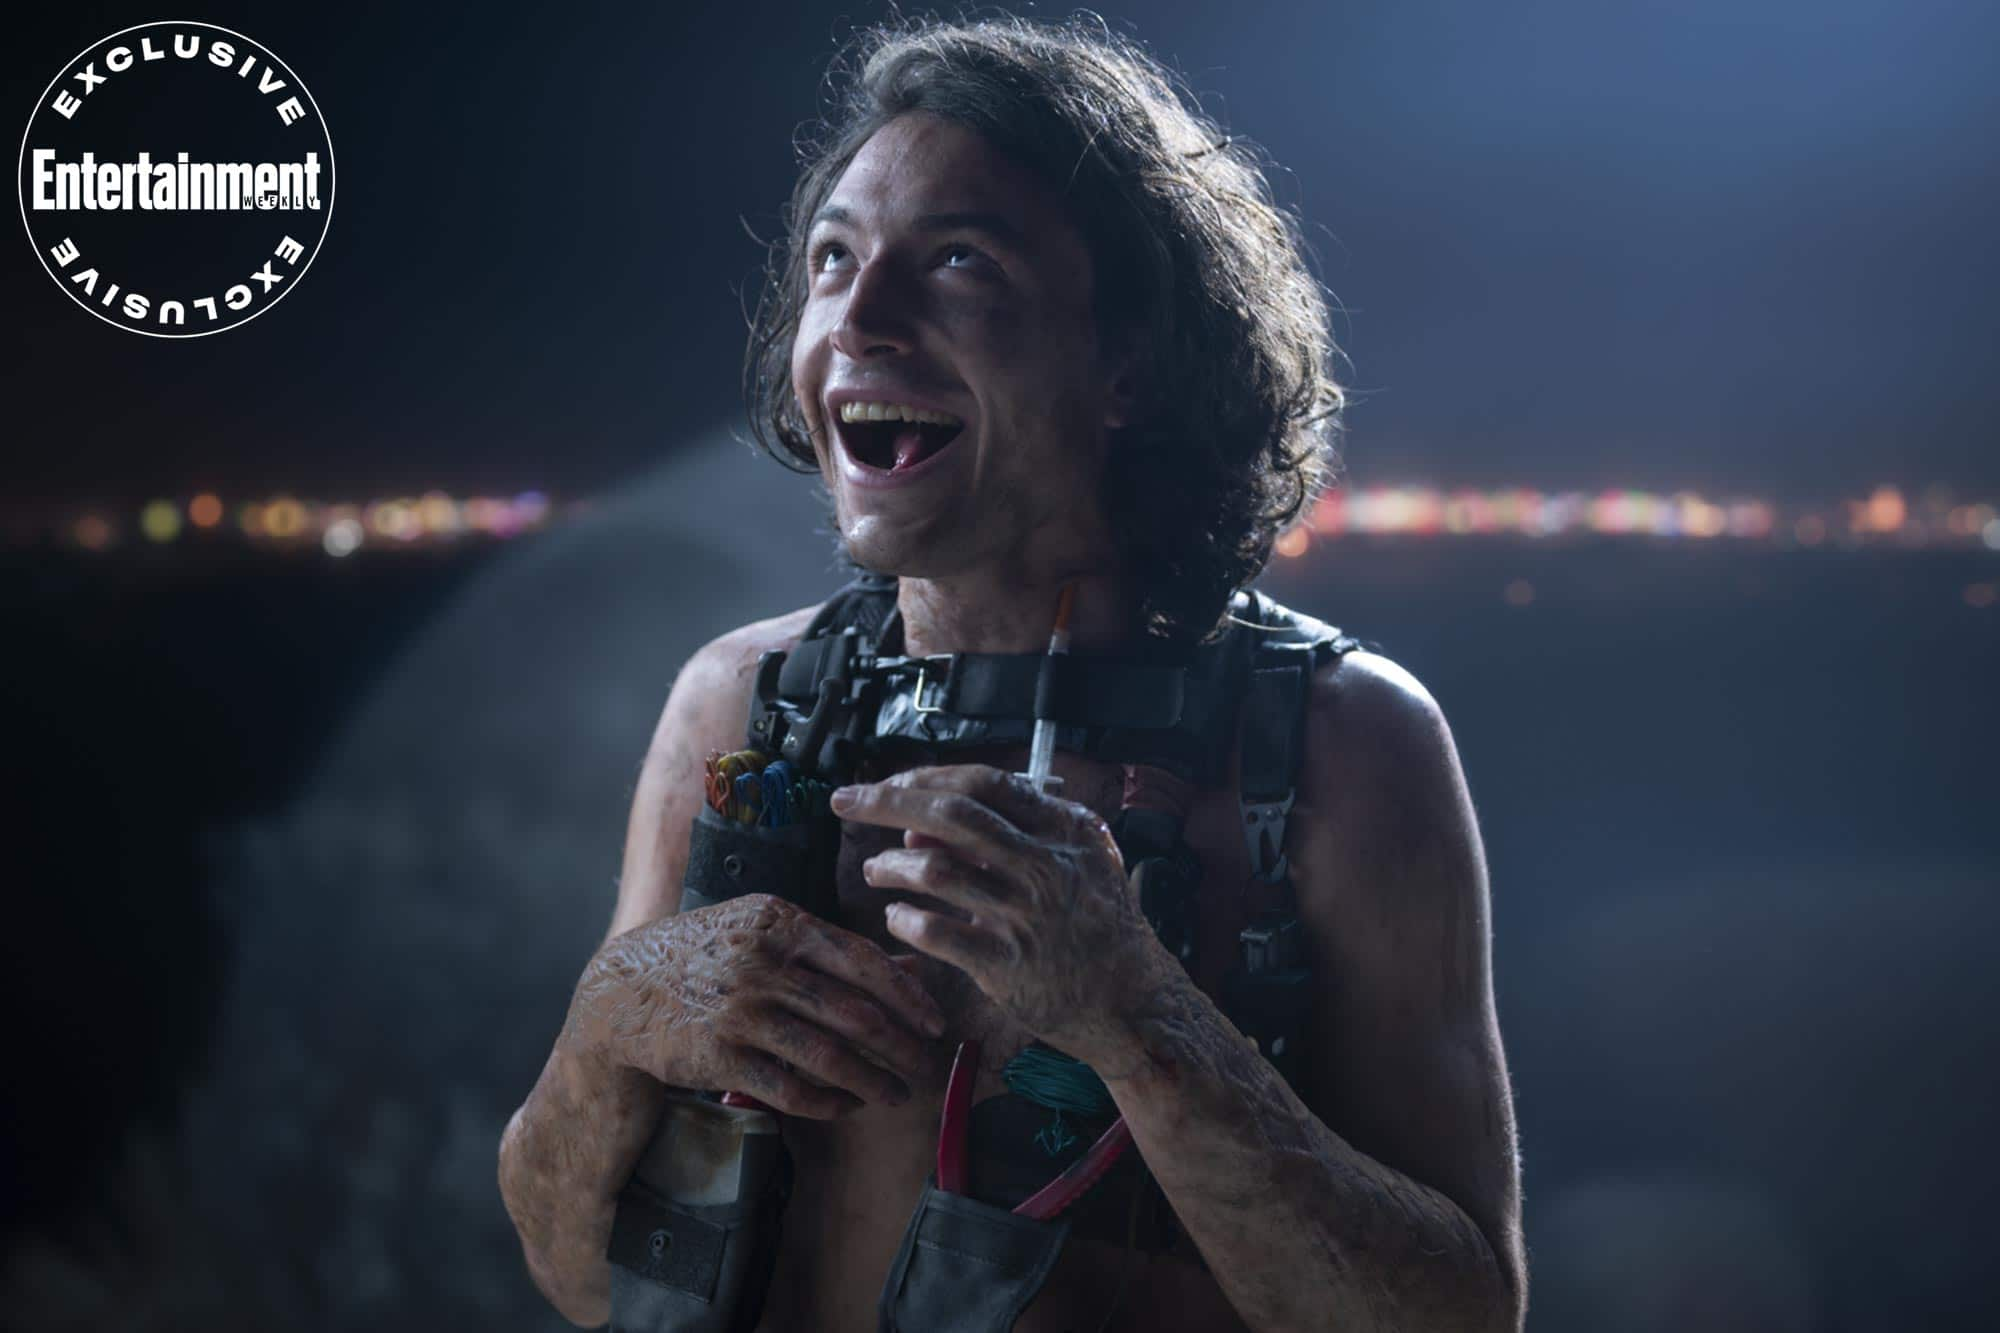 """The Stand"" Reveals its Trashcan Man As Ezra Miller"